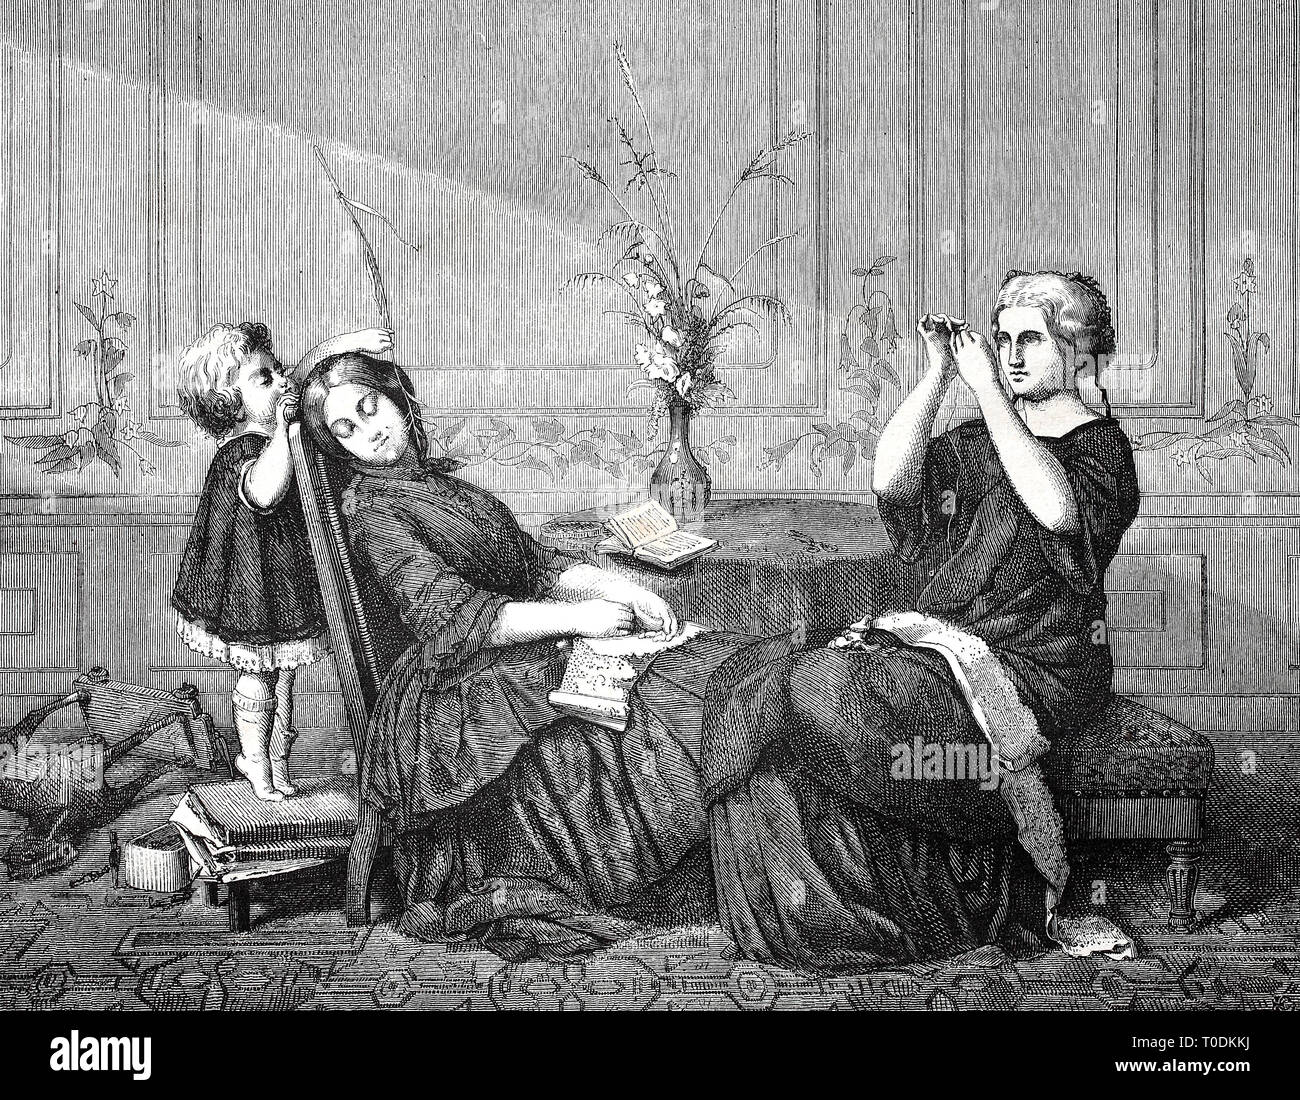 Digital improved reproduction, orphan infuriates his sleeping nanny with a blade of grass, original woodprint from th 19th century Stock Photo